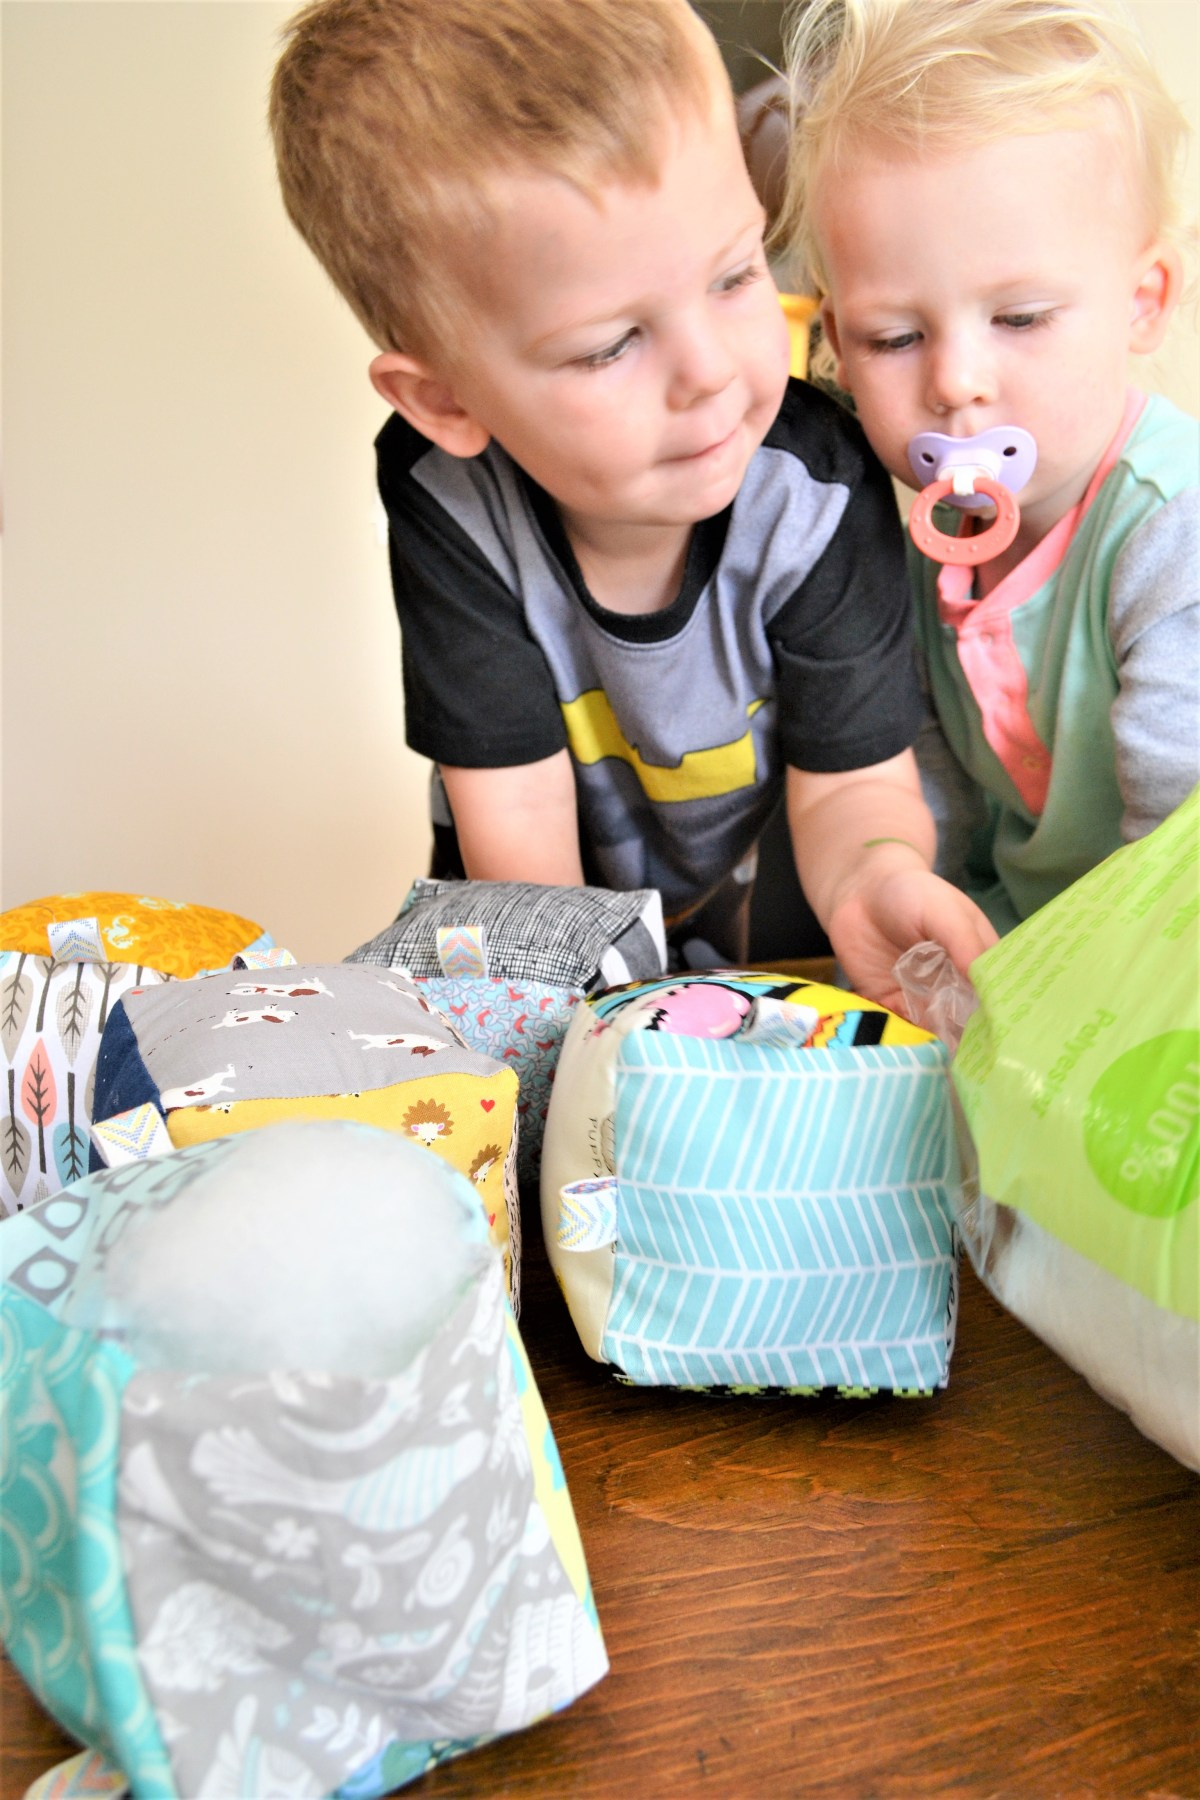 How to Sew Baby Blocks With Taggies! - kids helping